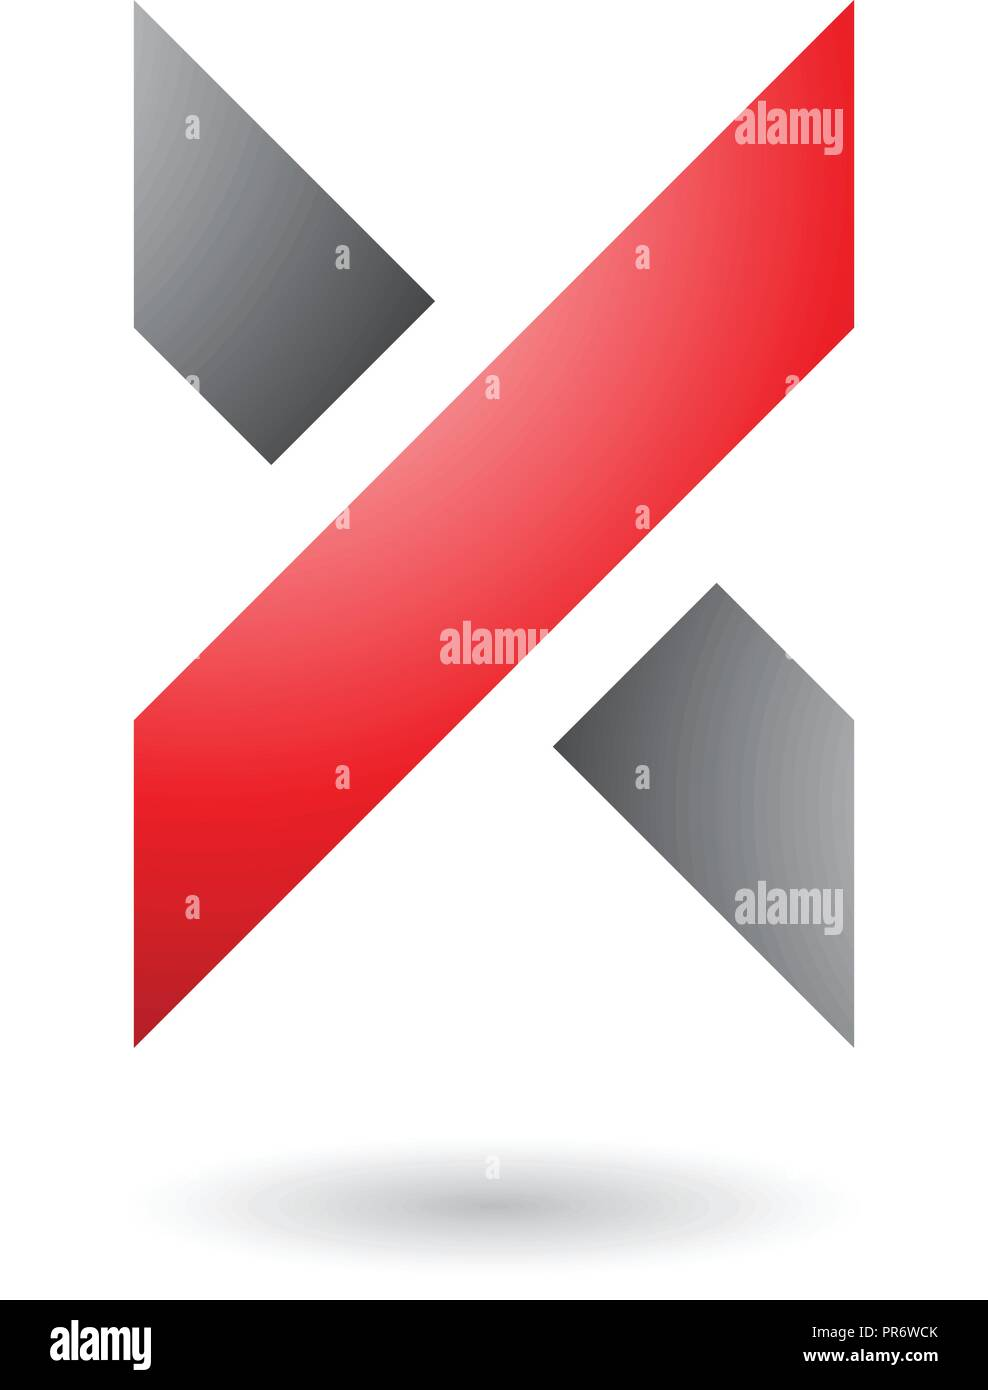 Vector Illustration of Red and Grey Thick Shaded Letter X isolated on a White Background - Stock Image